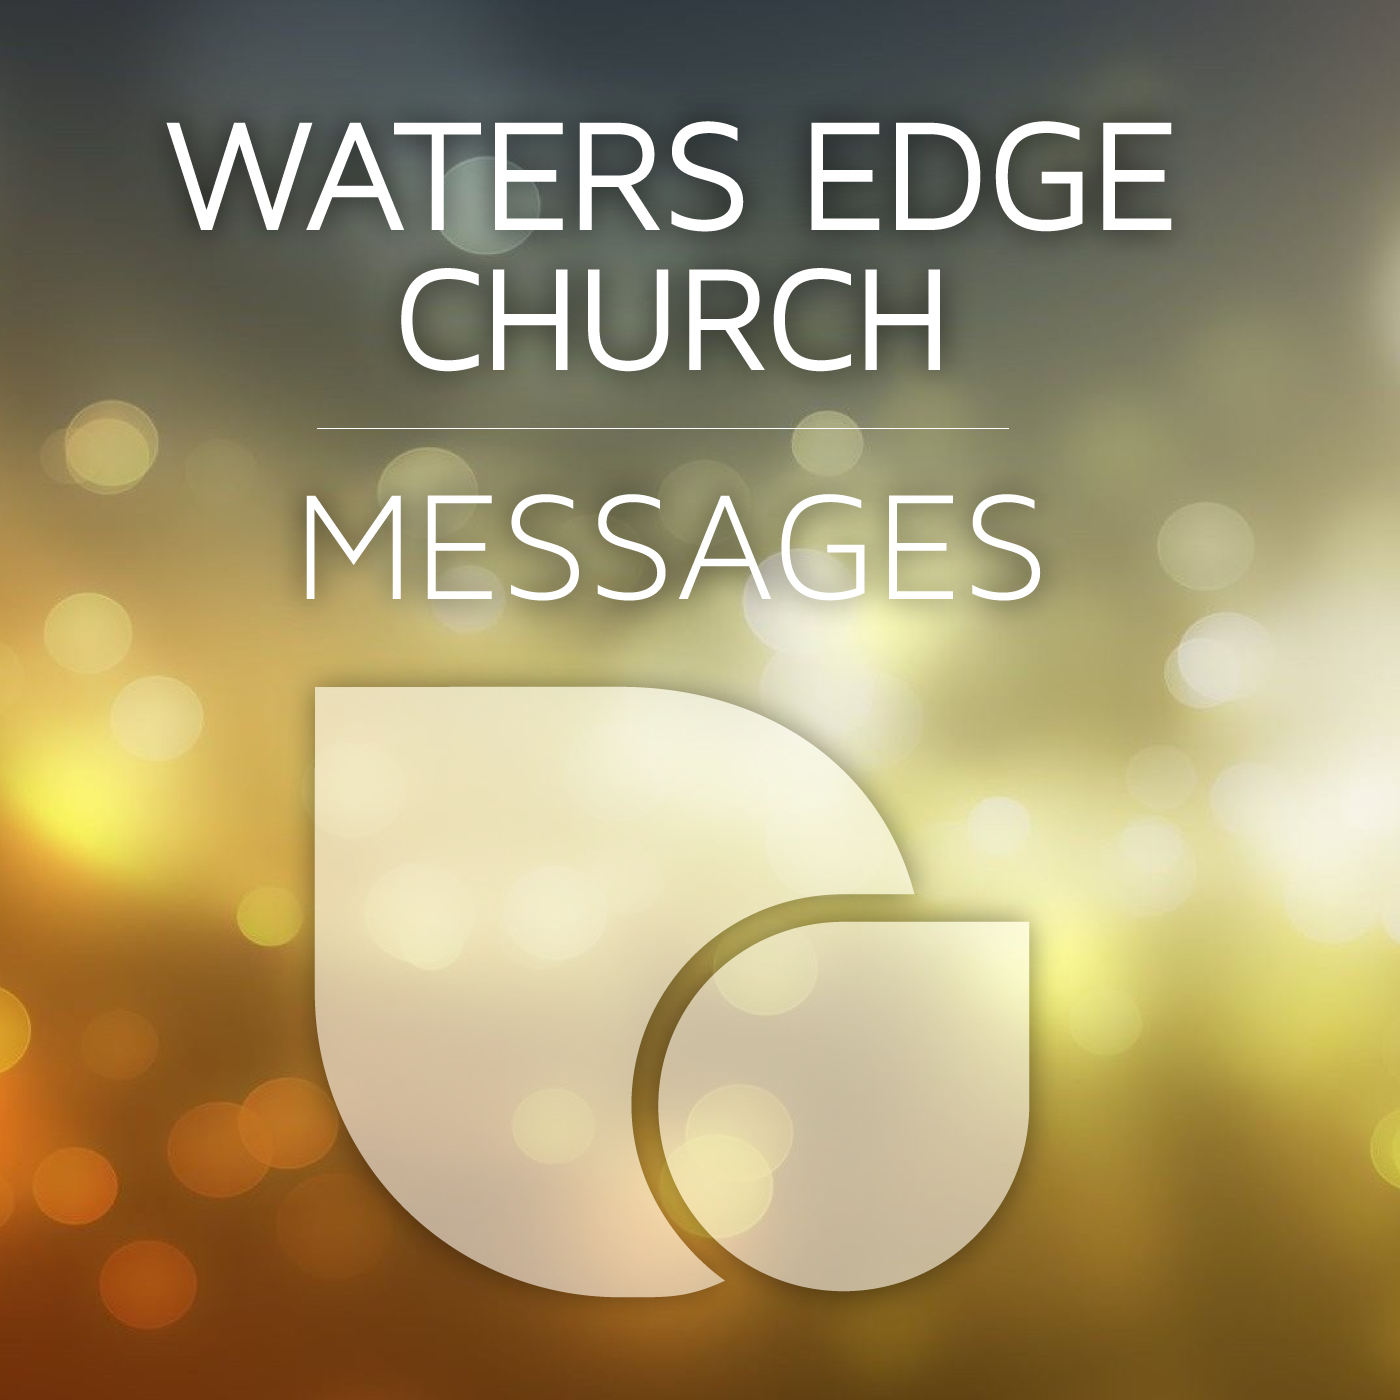 Water's Edge Church